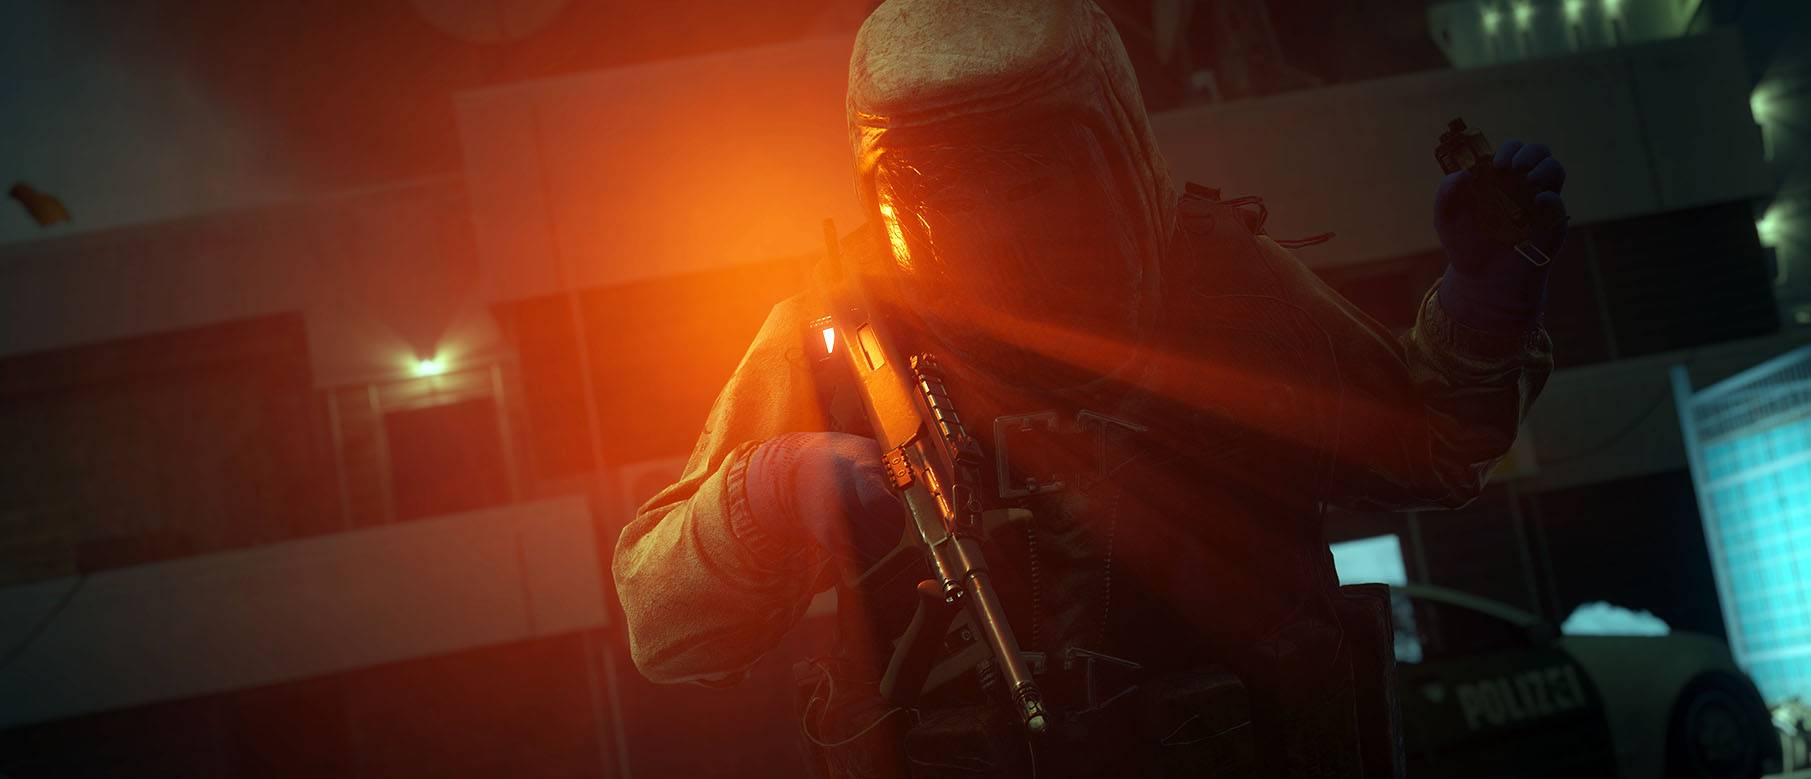 Rainbow Six: Siege скоро получит второй сезонный пропуск?